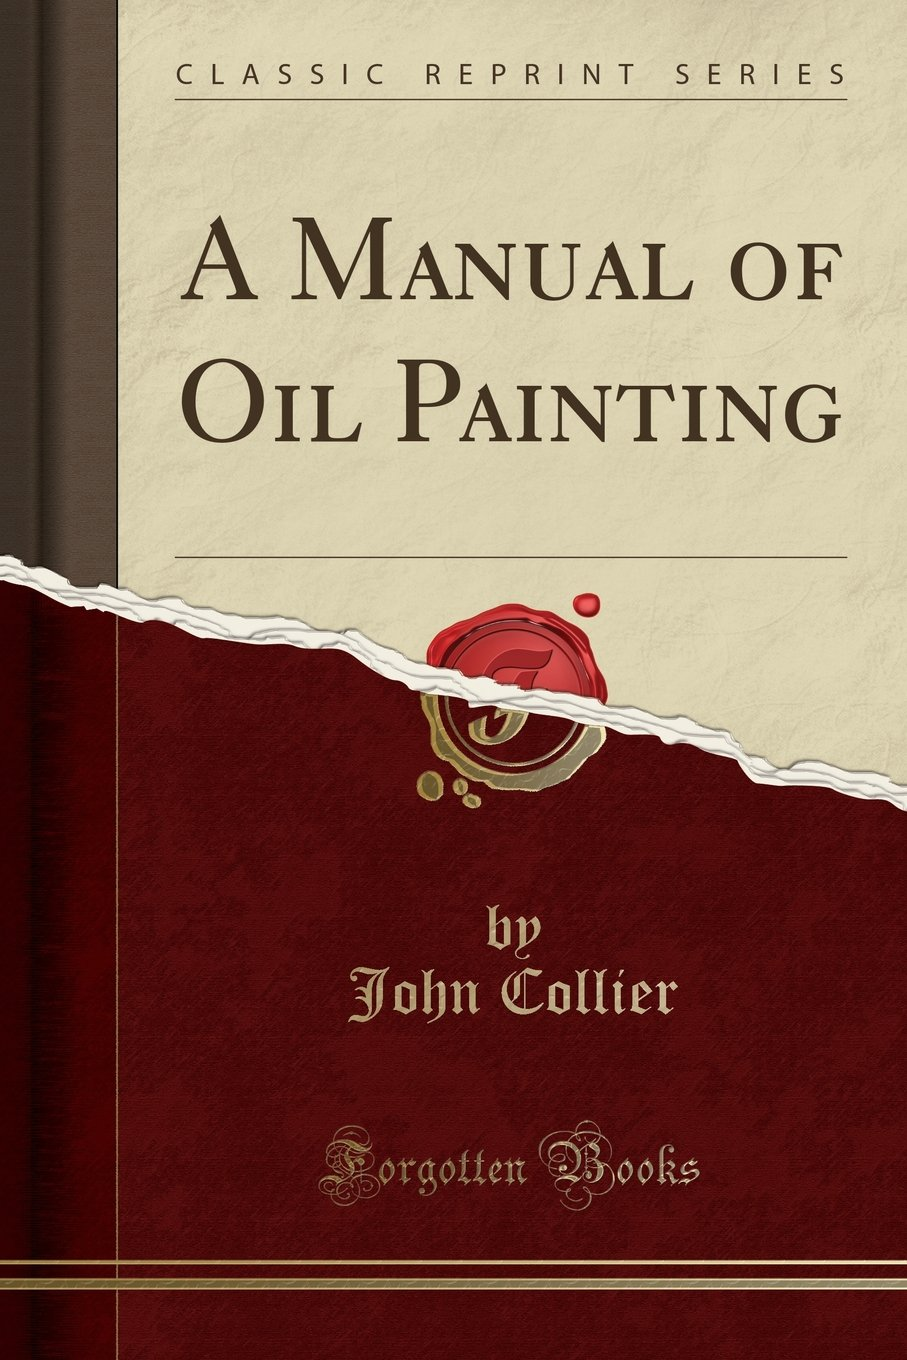 A Manual of Oil Painting (Classic Reprint): John Collier: 9781440087929:  Amazon.com: Books